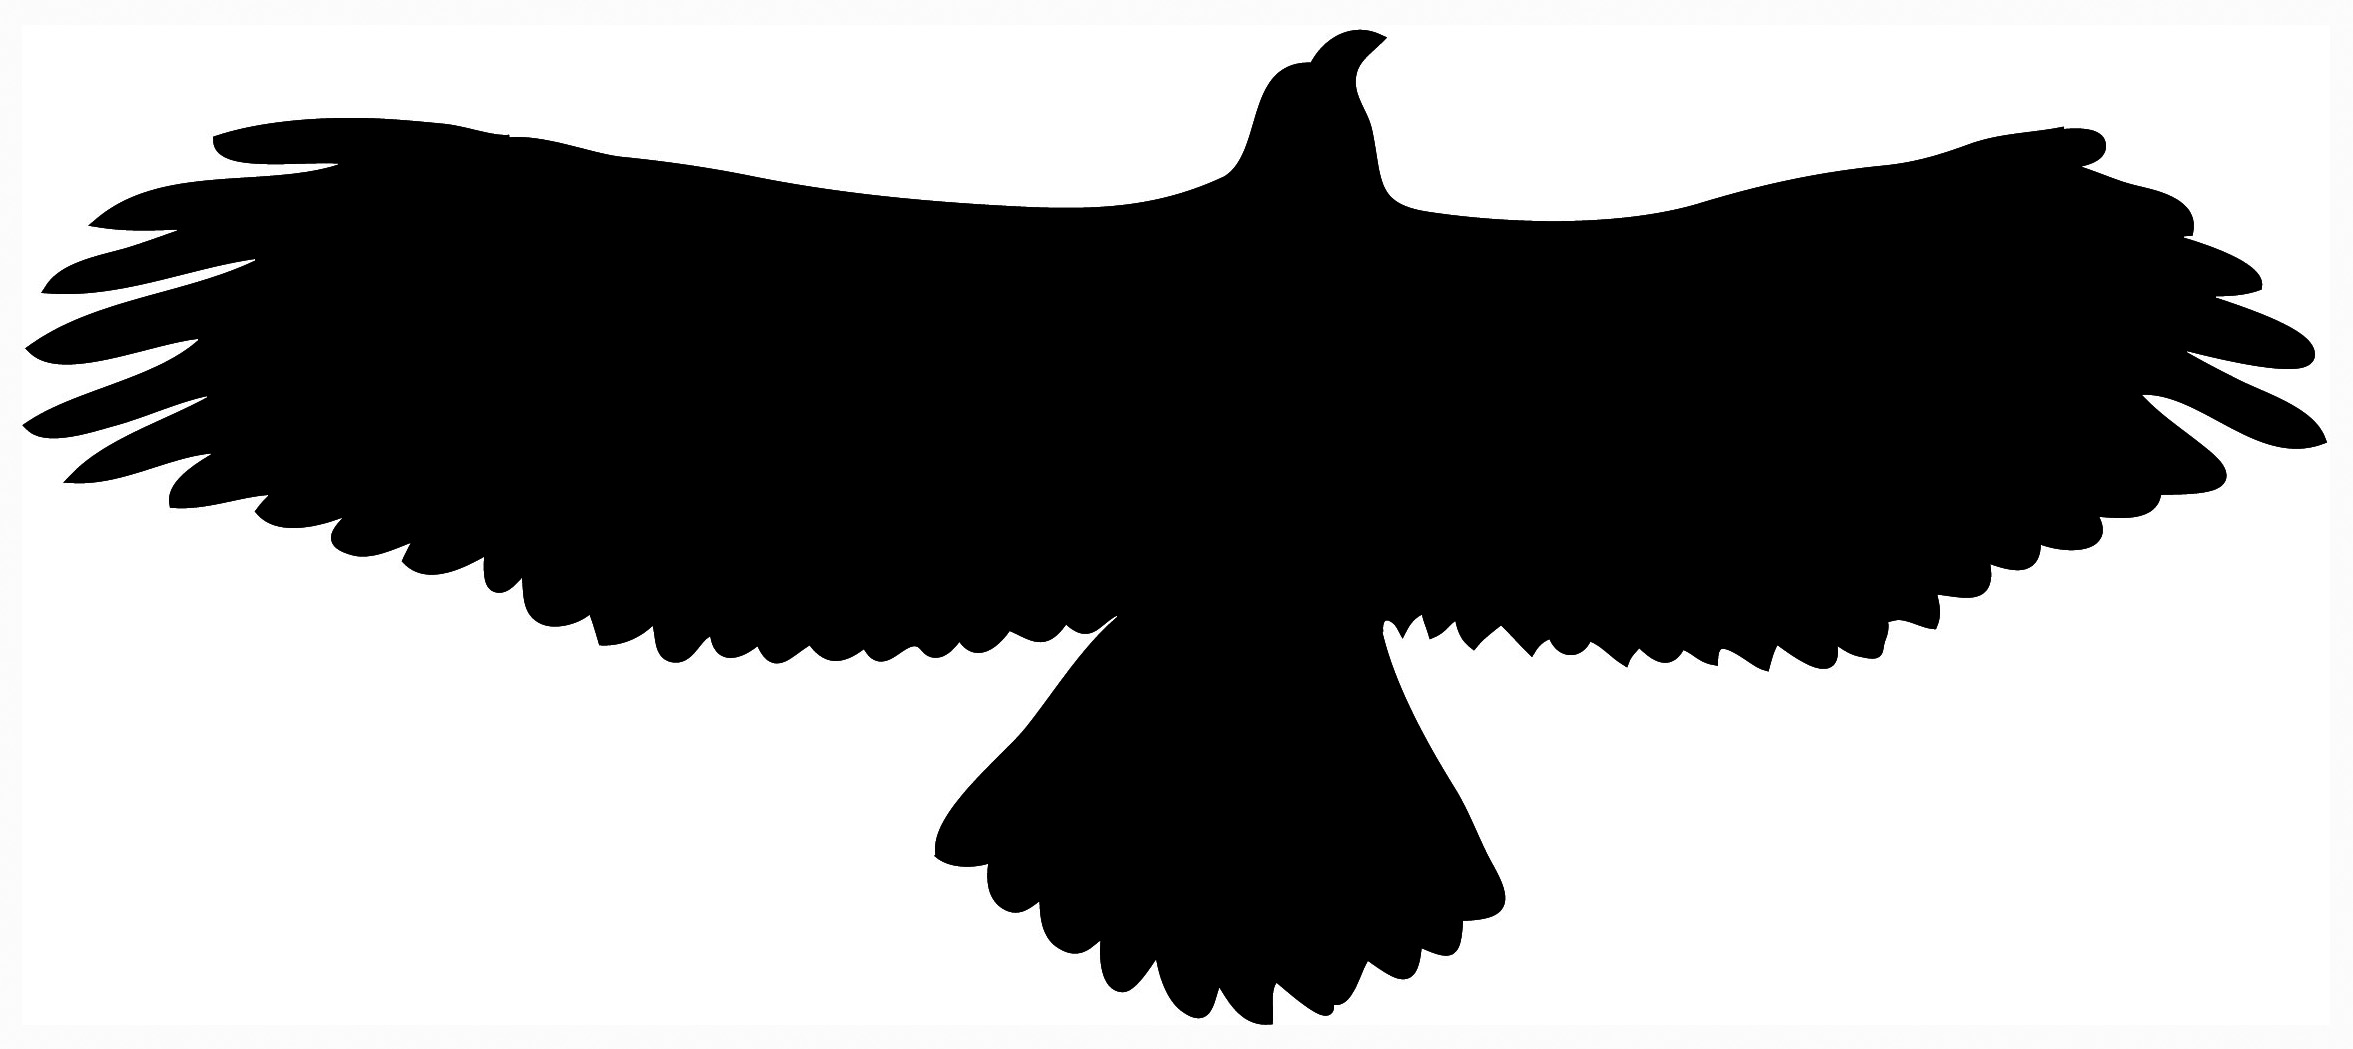 quail silhouette clip art - photo #42